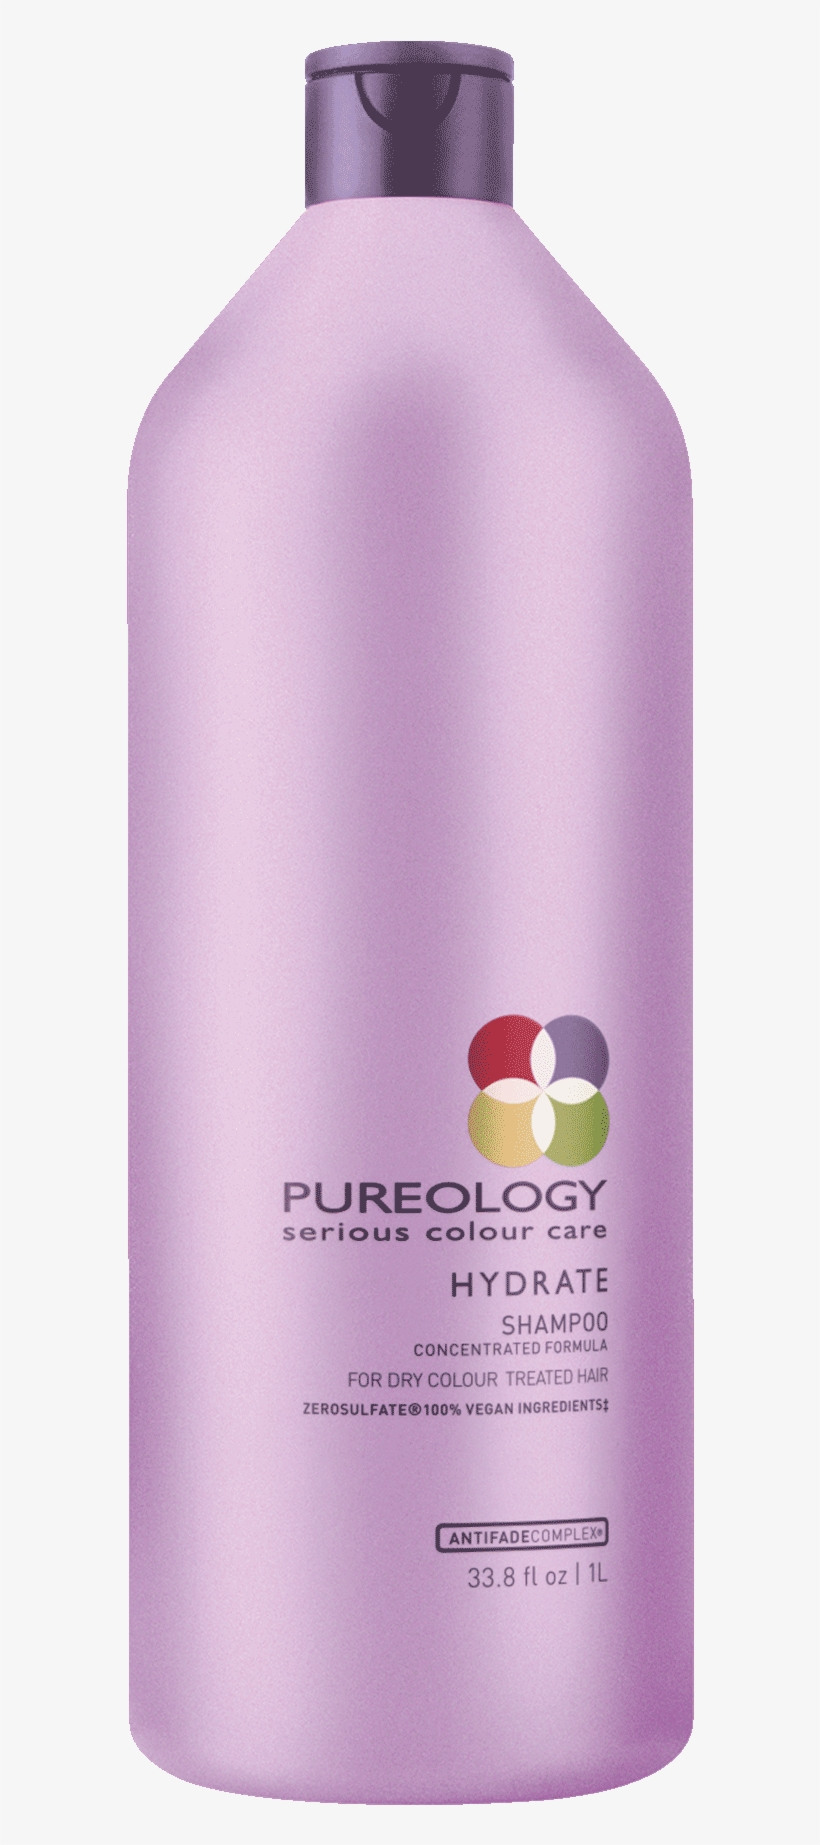 Hydrate Sulfate Free Shampoo Liter For Dry, Color Treated - Born Haircare Pureology Clean Volume Conditioner 50ml, transparent png #3971122